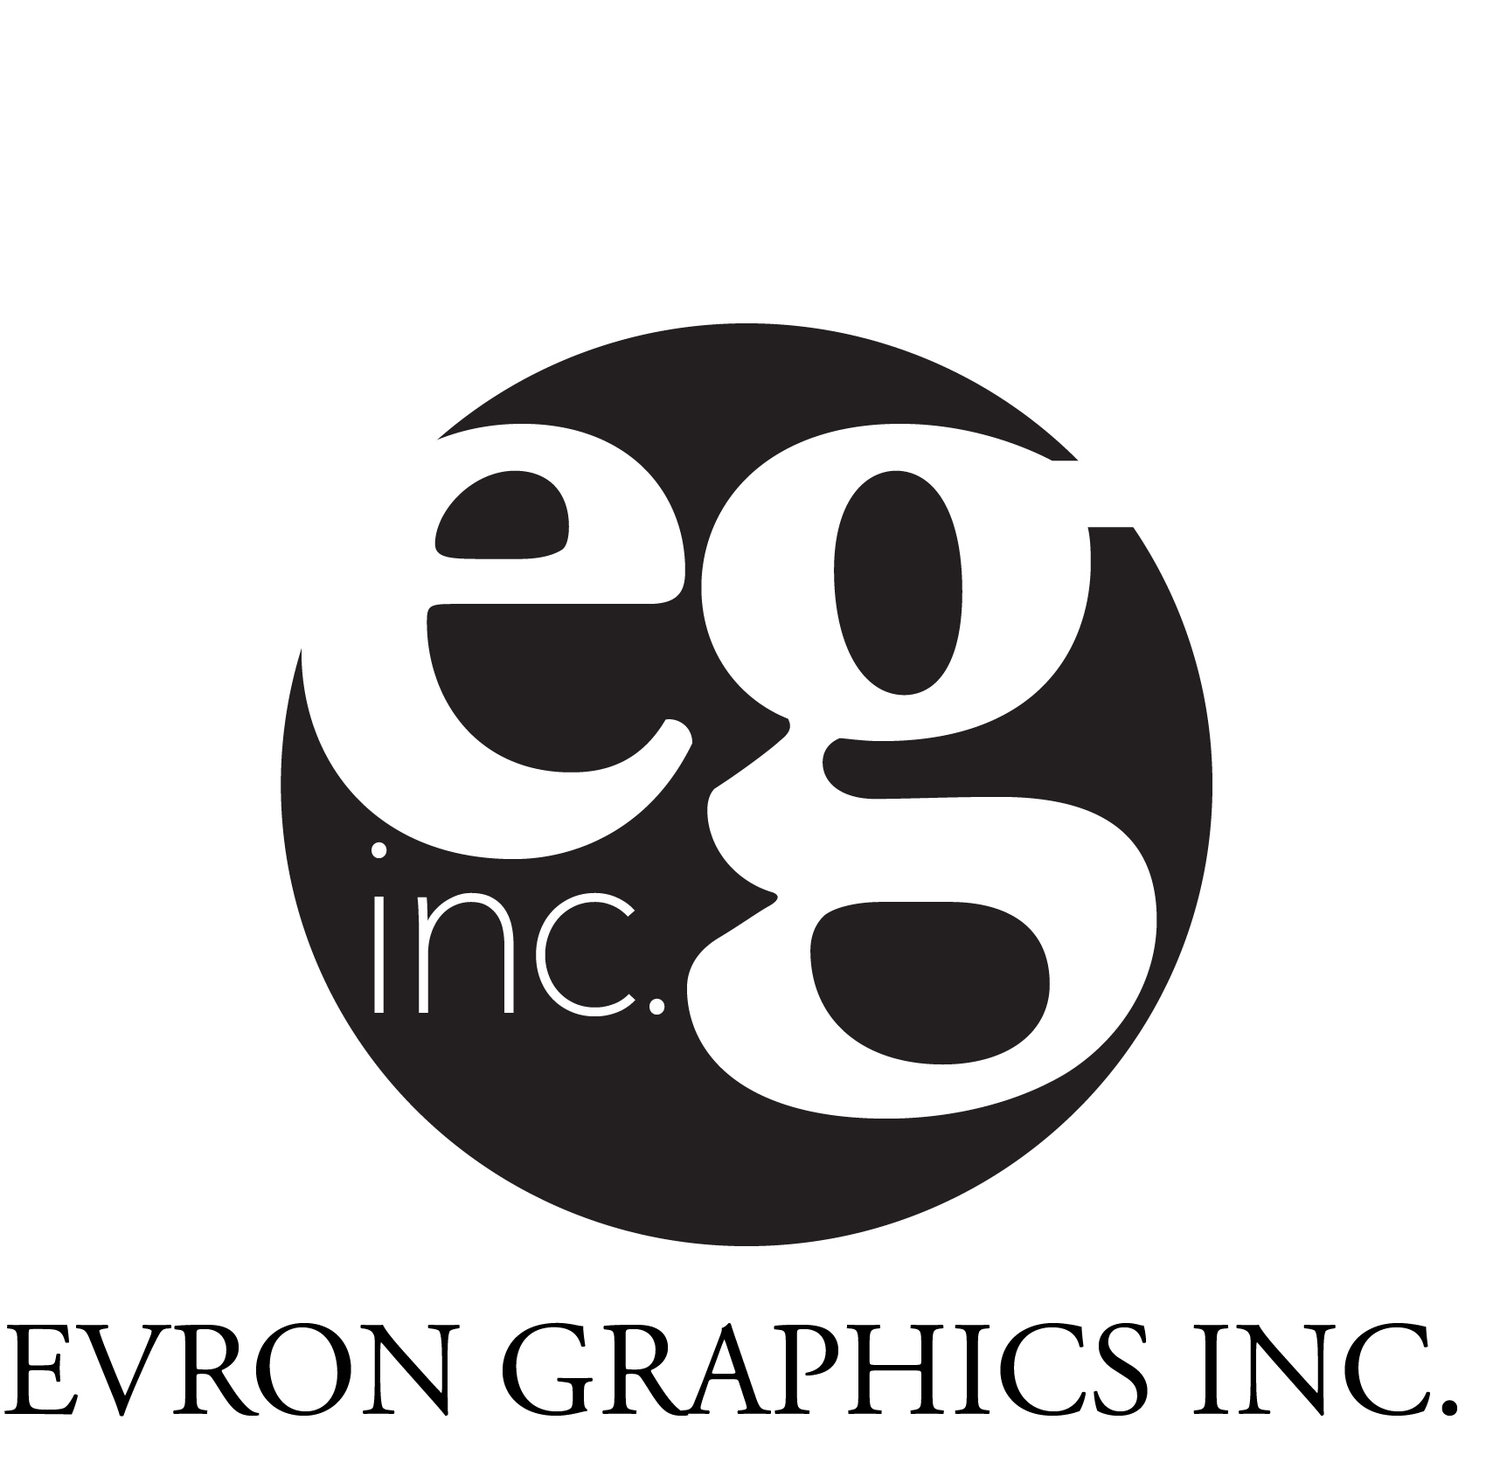 Evron Graphics, Inc.